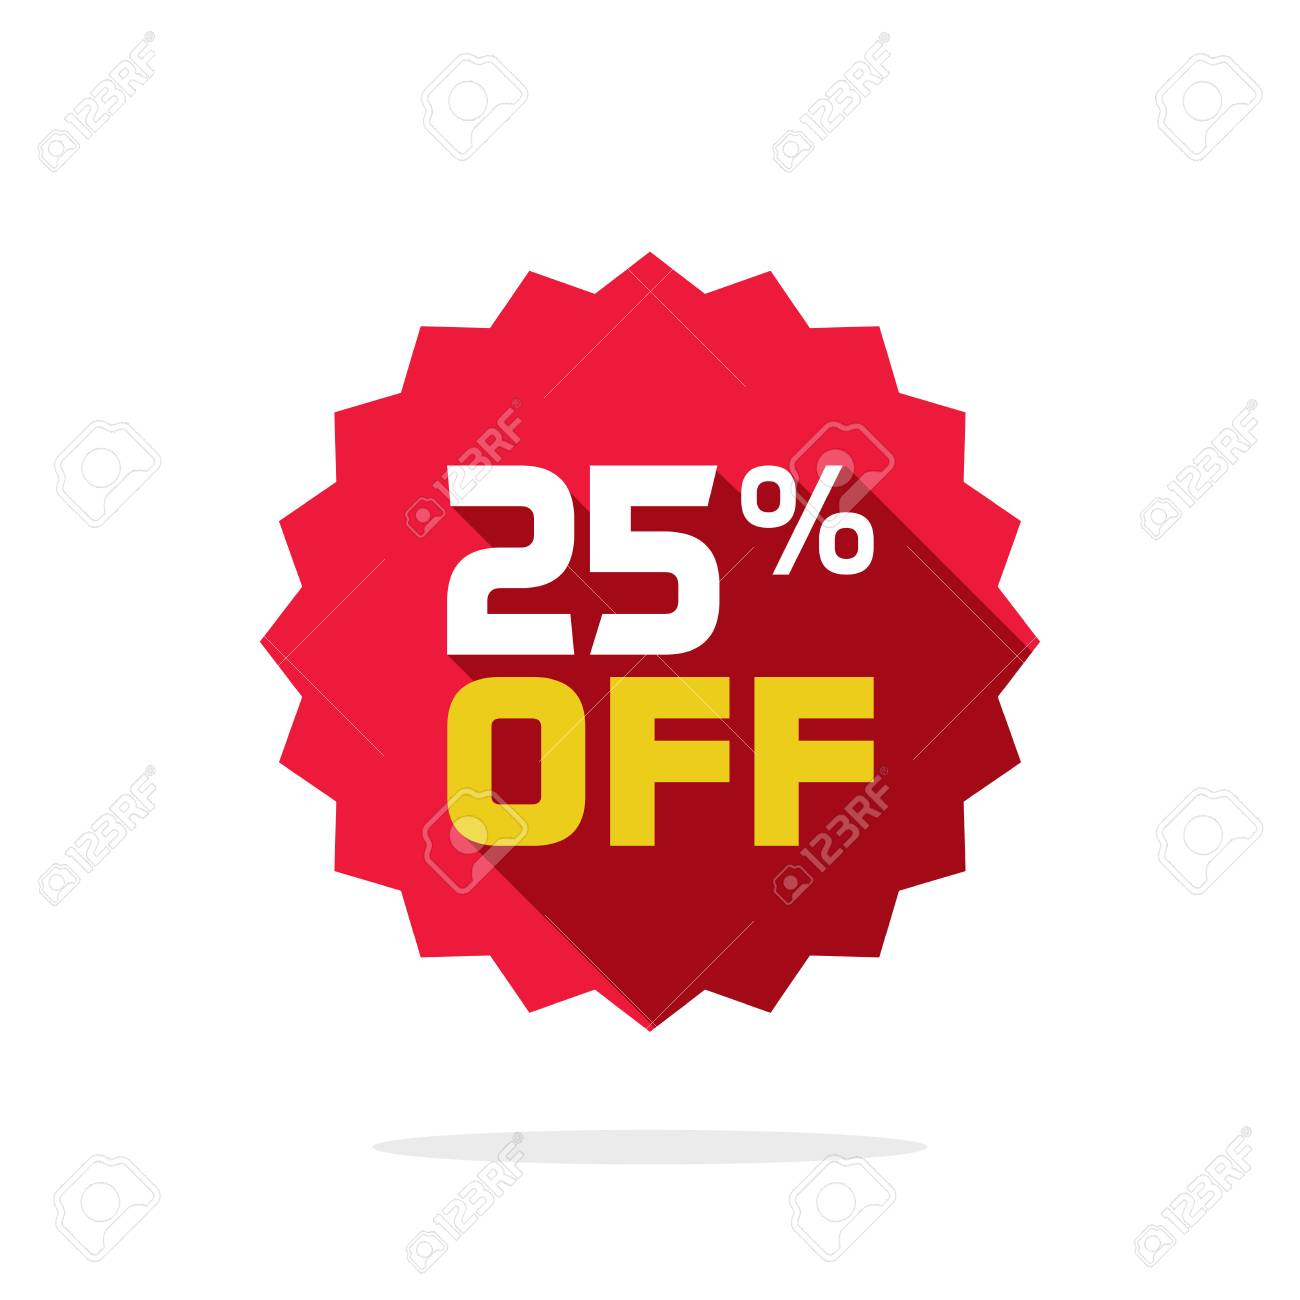 Sale tag vector badge template, 25 percent off sale label symbol, 25 discount promotion flat icon with long shadow, clearance sale sticker emblem, bargain red sign rosette design isolated on white - 91439884